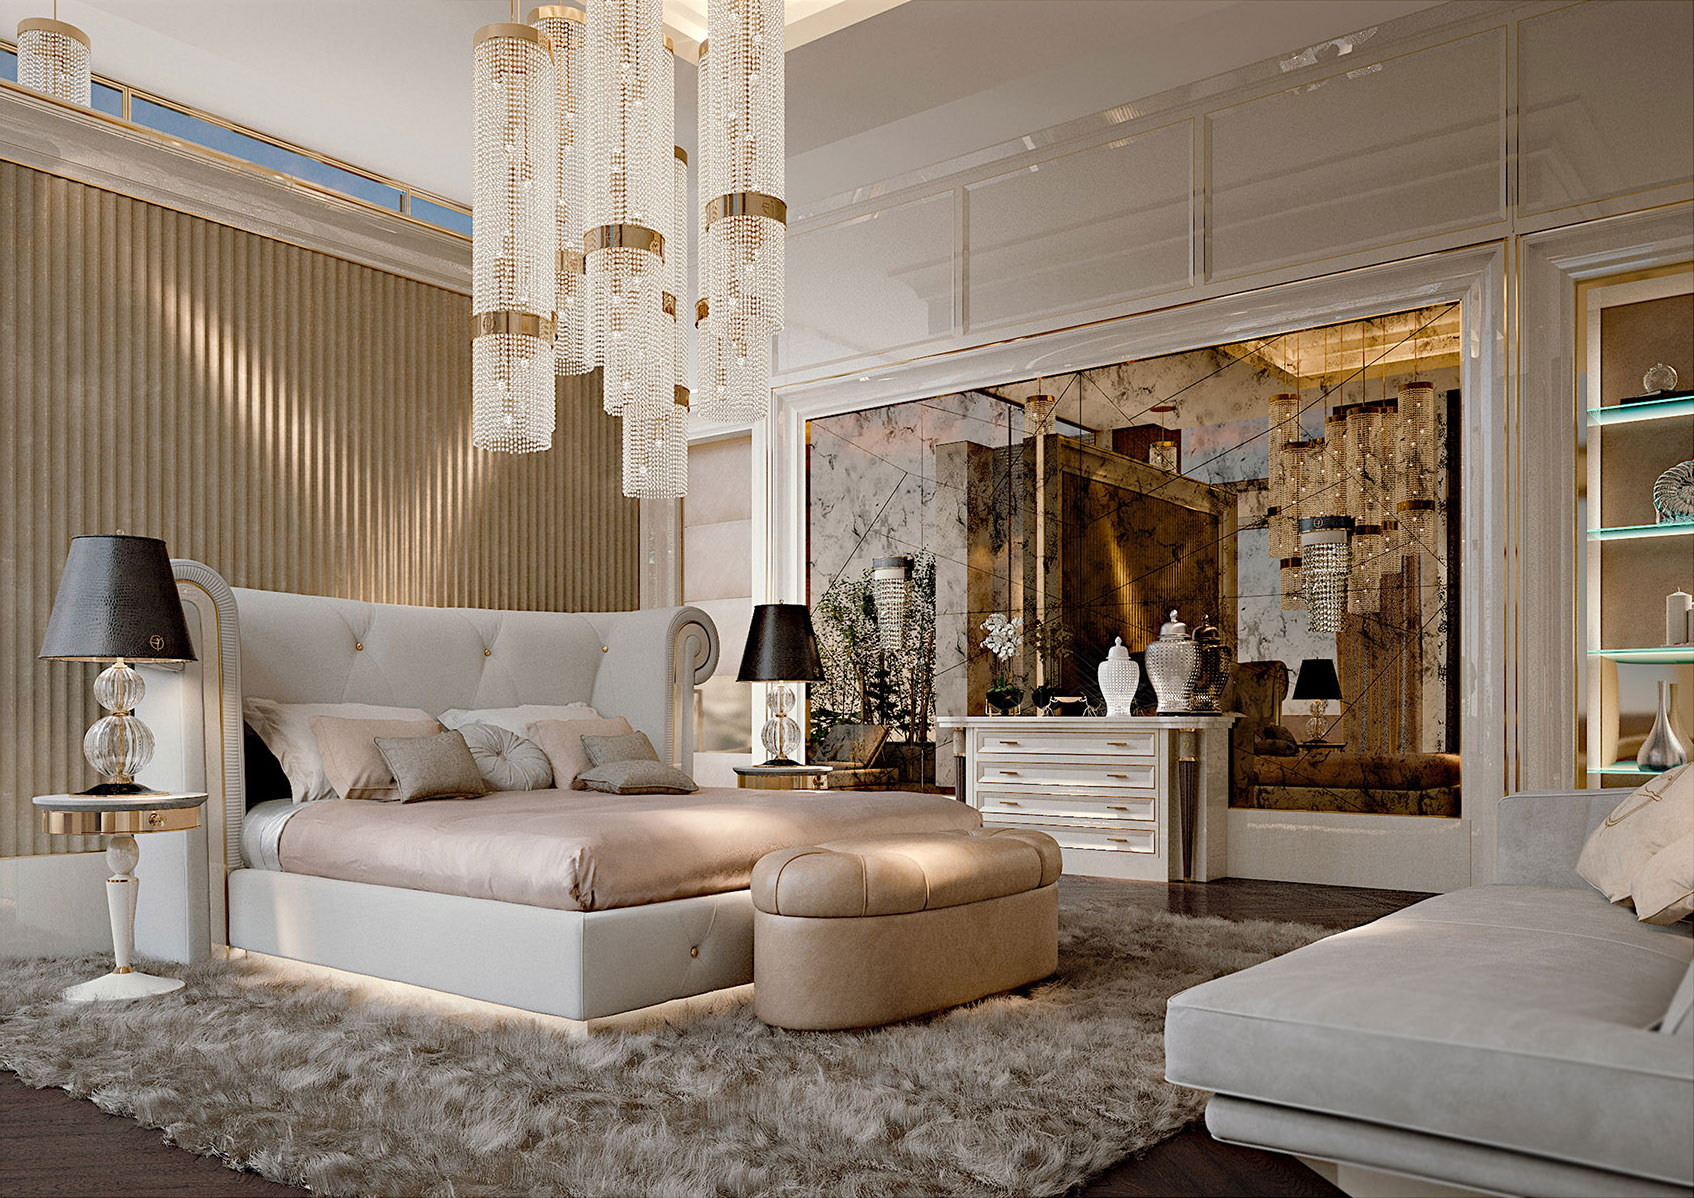 Private Residence New York Project Faoma